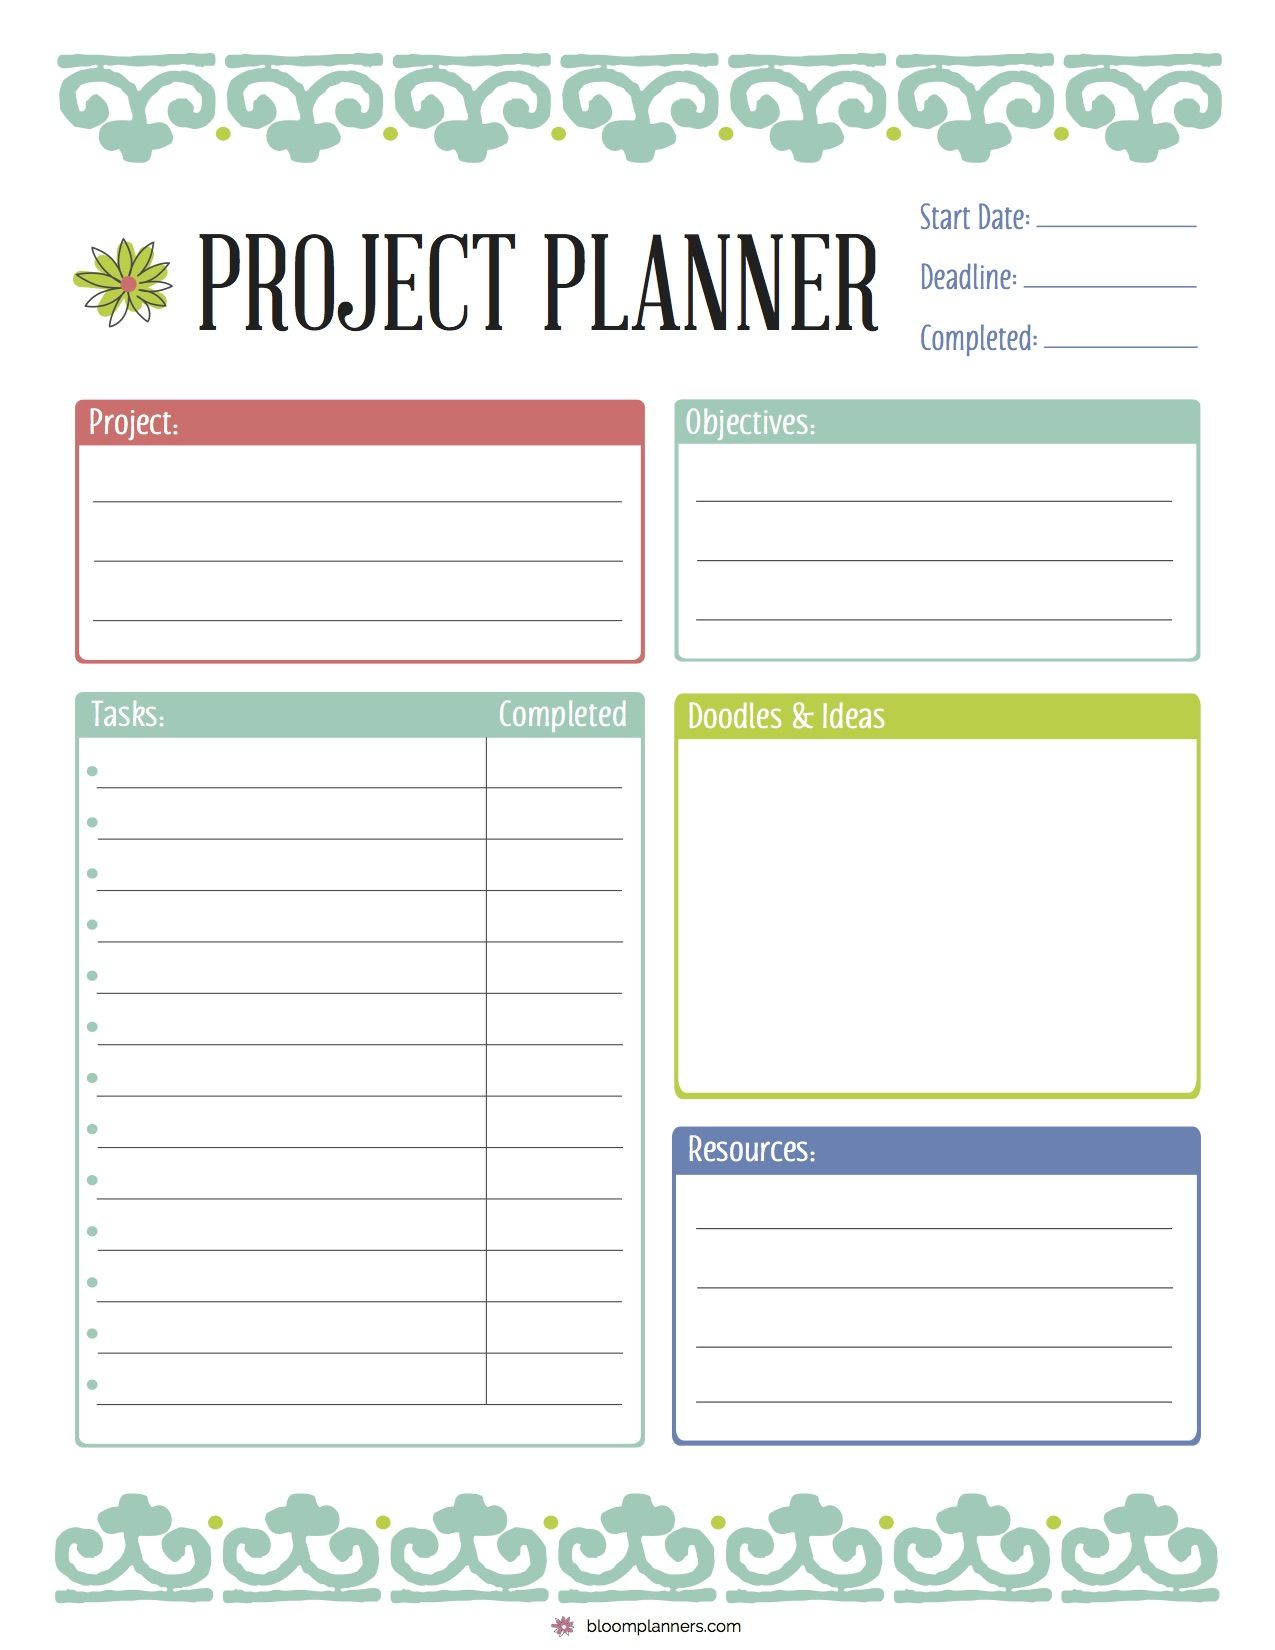 photograph relating to Free Printable Planners called Cost-free Printable Job Planner in opposition to bloom every day planners